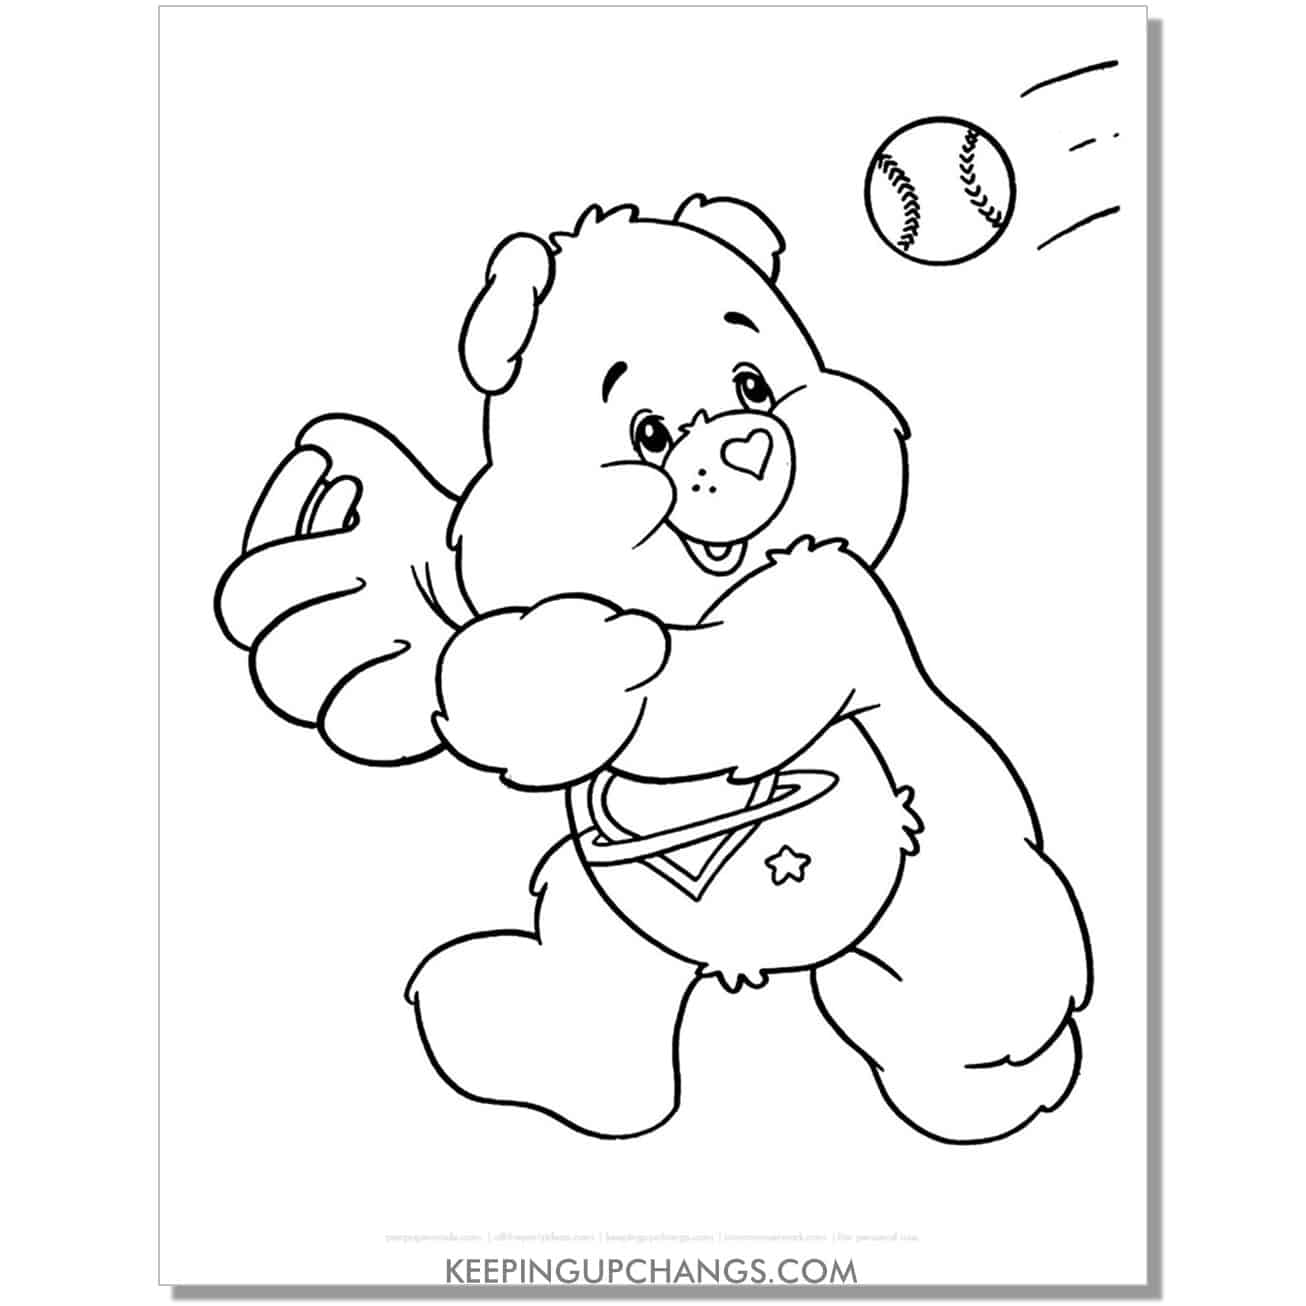 daydream care bear catching baseball coloring page.